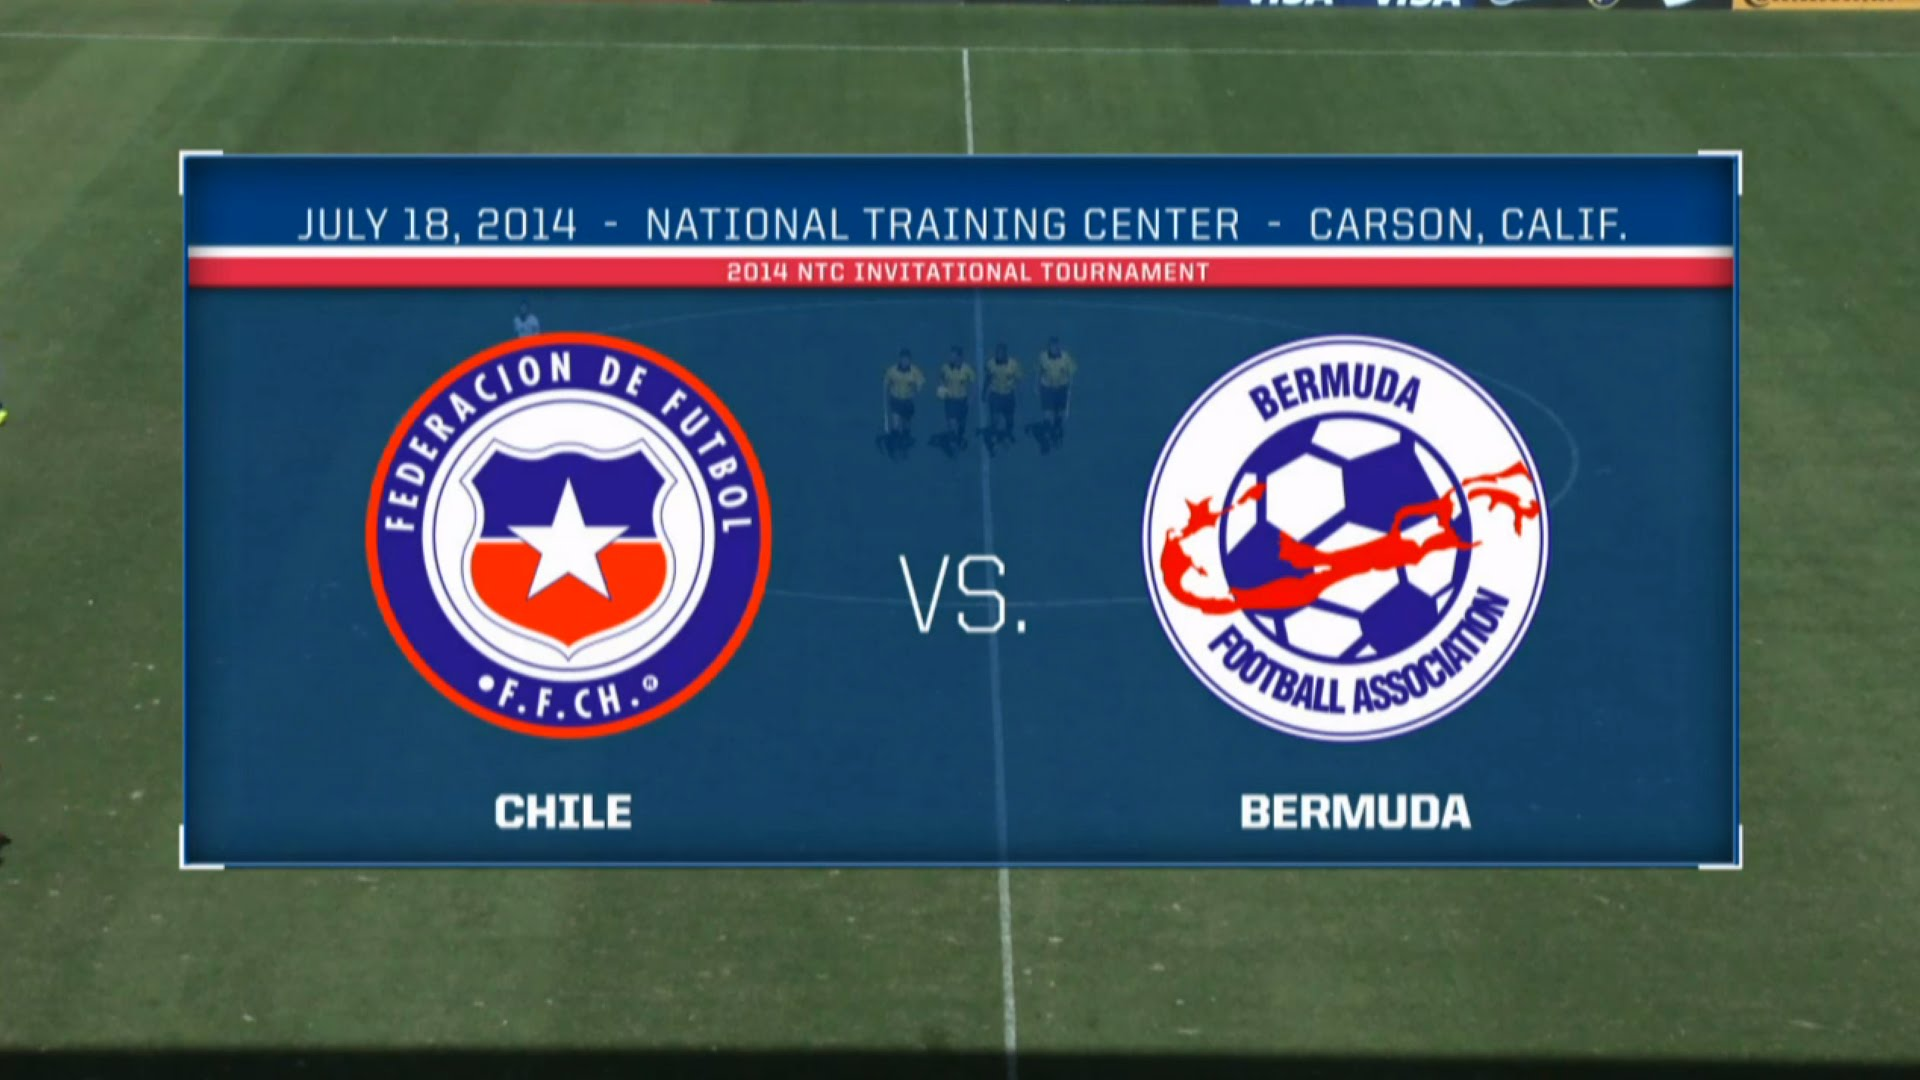 U-20 #Bermuda vs. Chile @USSoccer NTC Invitational 2014